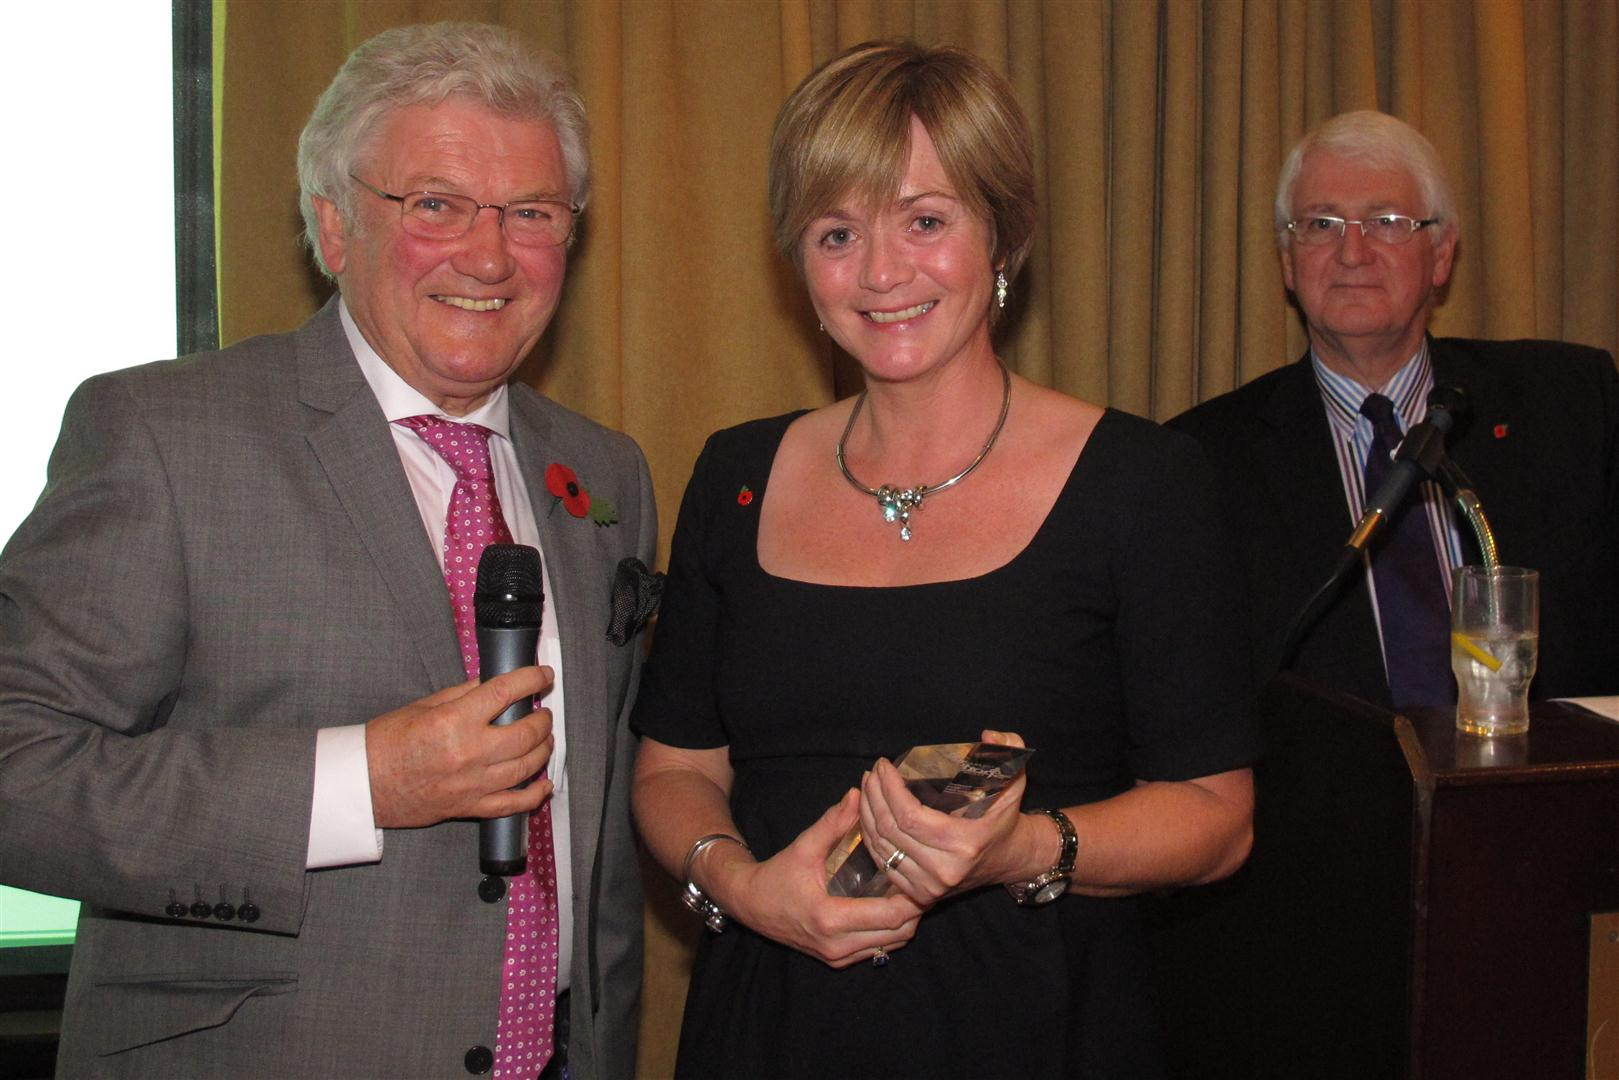 Gillian Chambers collects an award on behalf of Peter